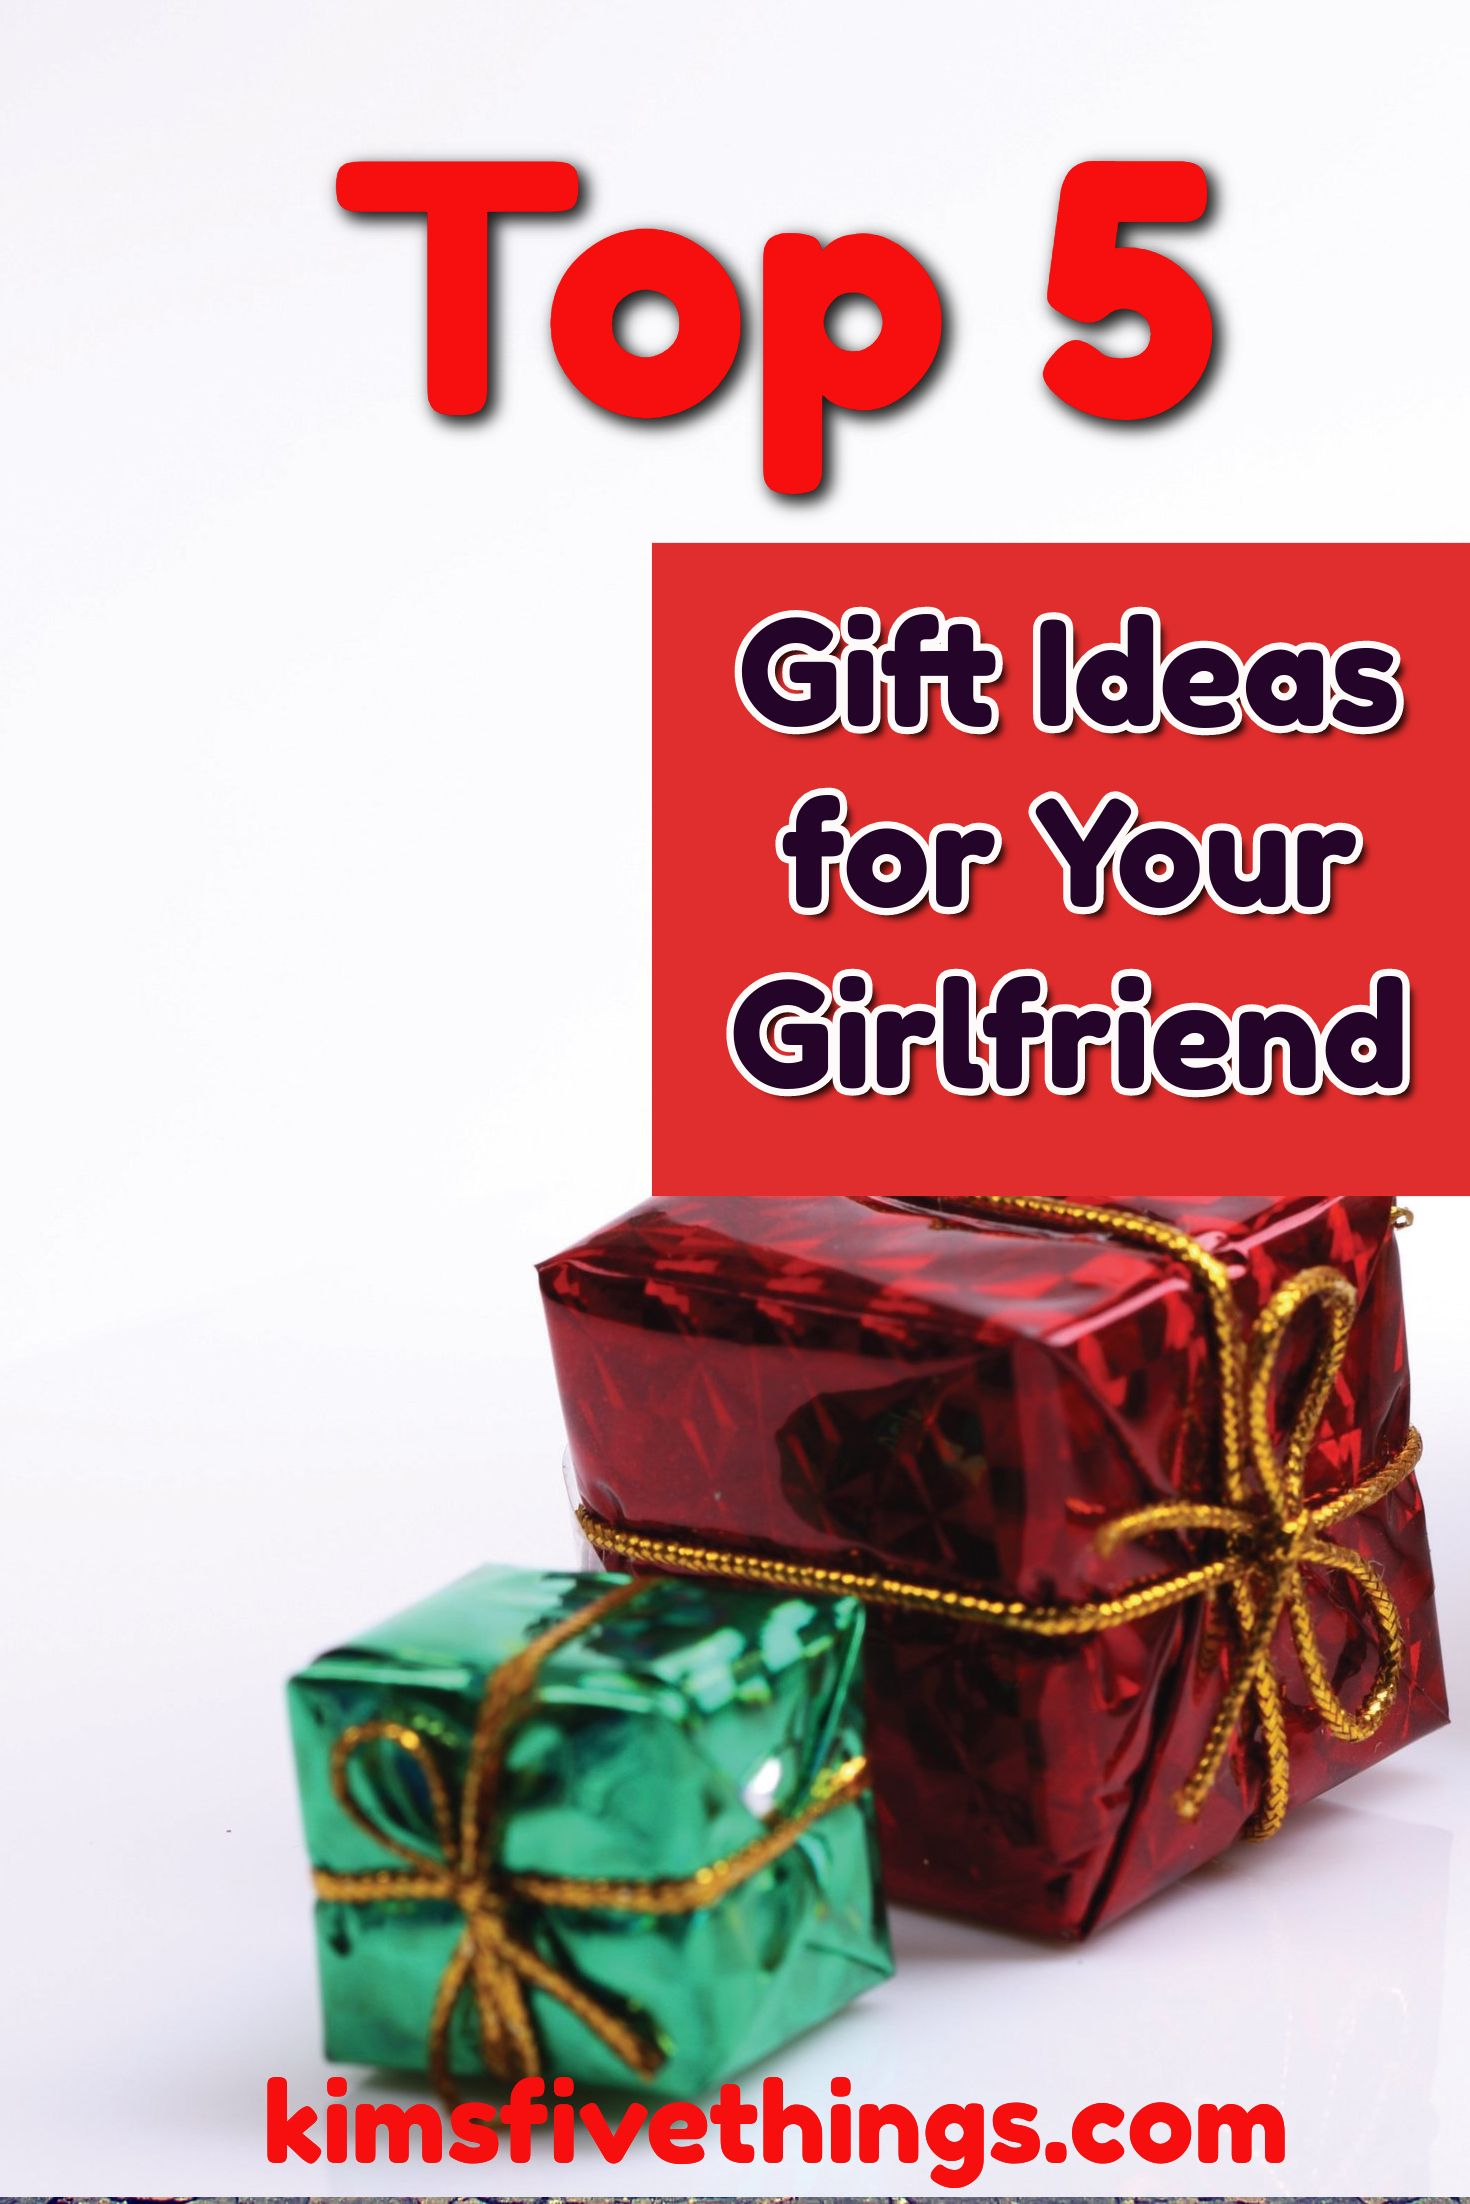 Top 5 Christmas Gifts For Your Girlfriend Special Presents For A Girlfriend Gifts For Your Girlfriend Top 5 Christmas Gifts Christmas Gift For You